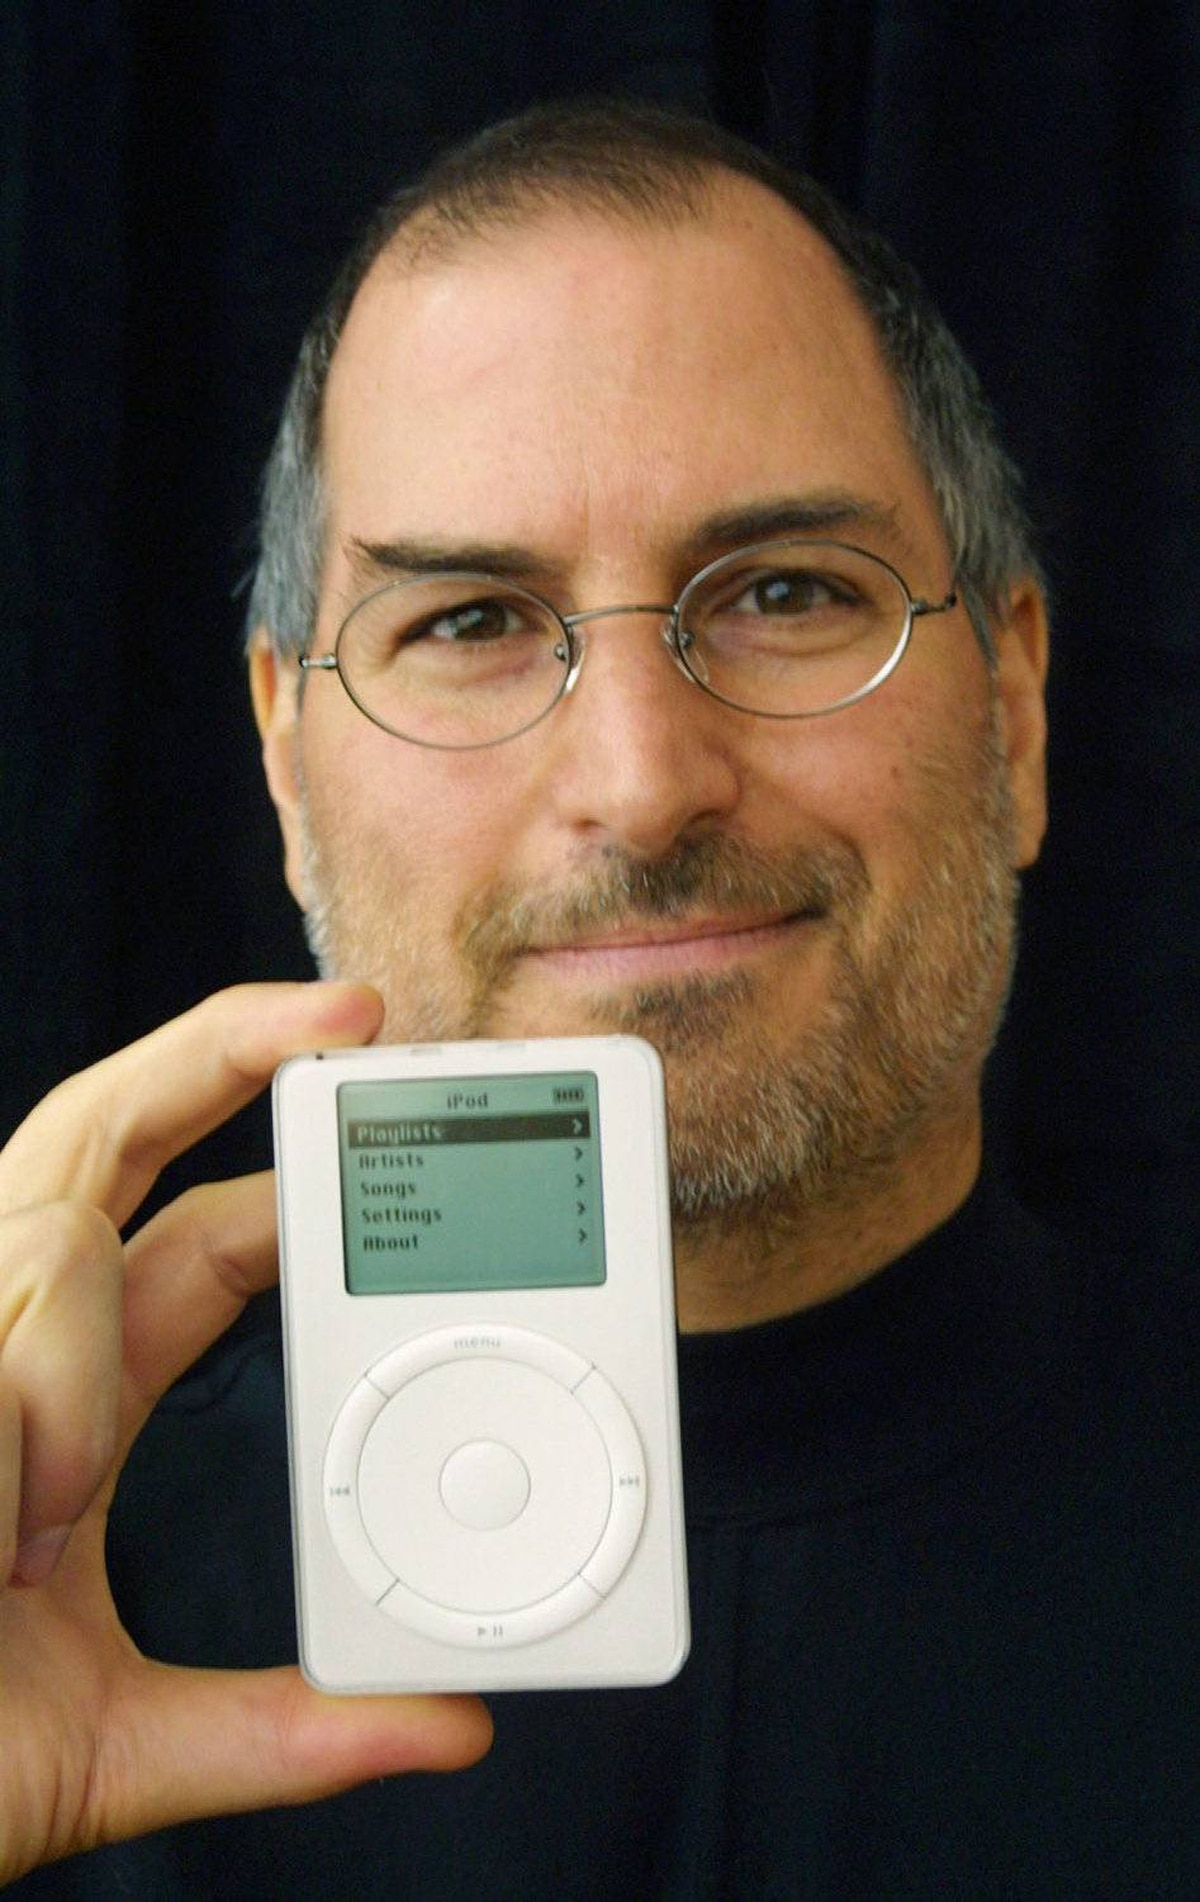 Apple Computer CEO Steve Jobs holds up the new Apple release in Cupertino, California October 23, 2001. The new MP3 music player packs up to 1,000 CD-quality songs into an ultra-portable, 6.5 ounce design that fits in your pocket.